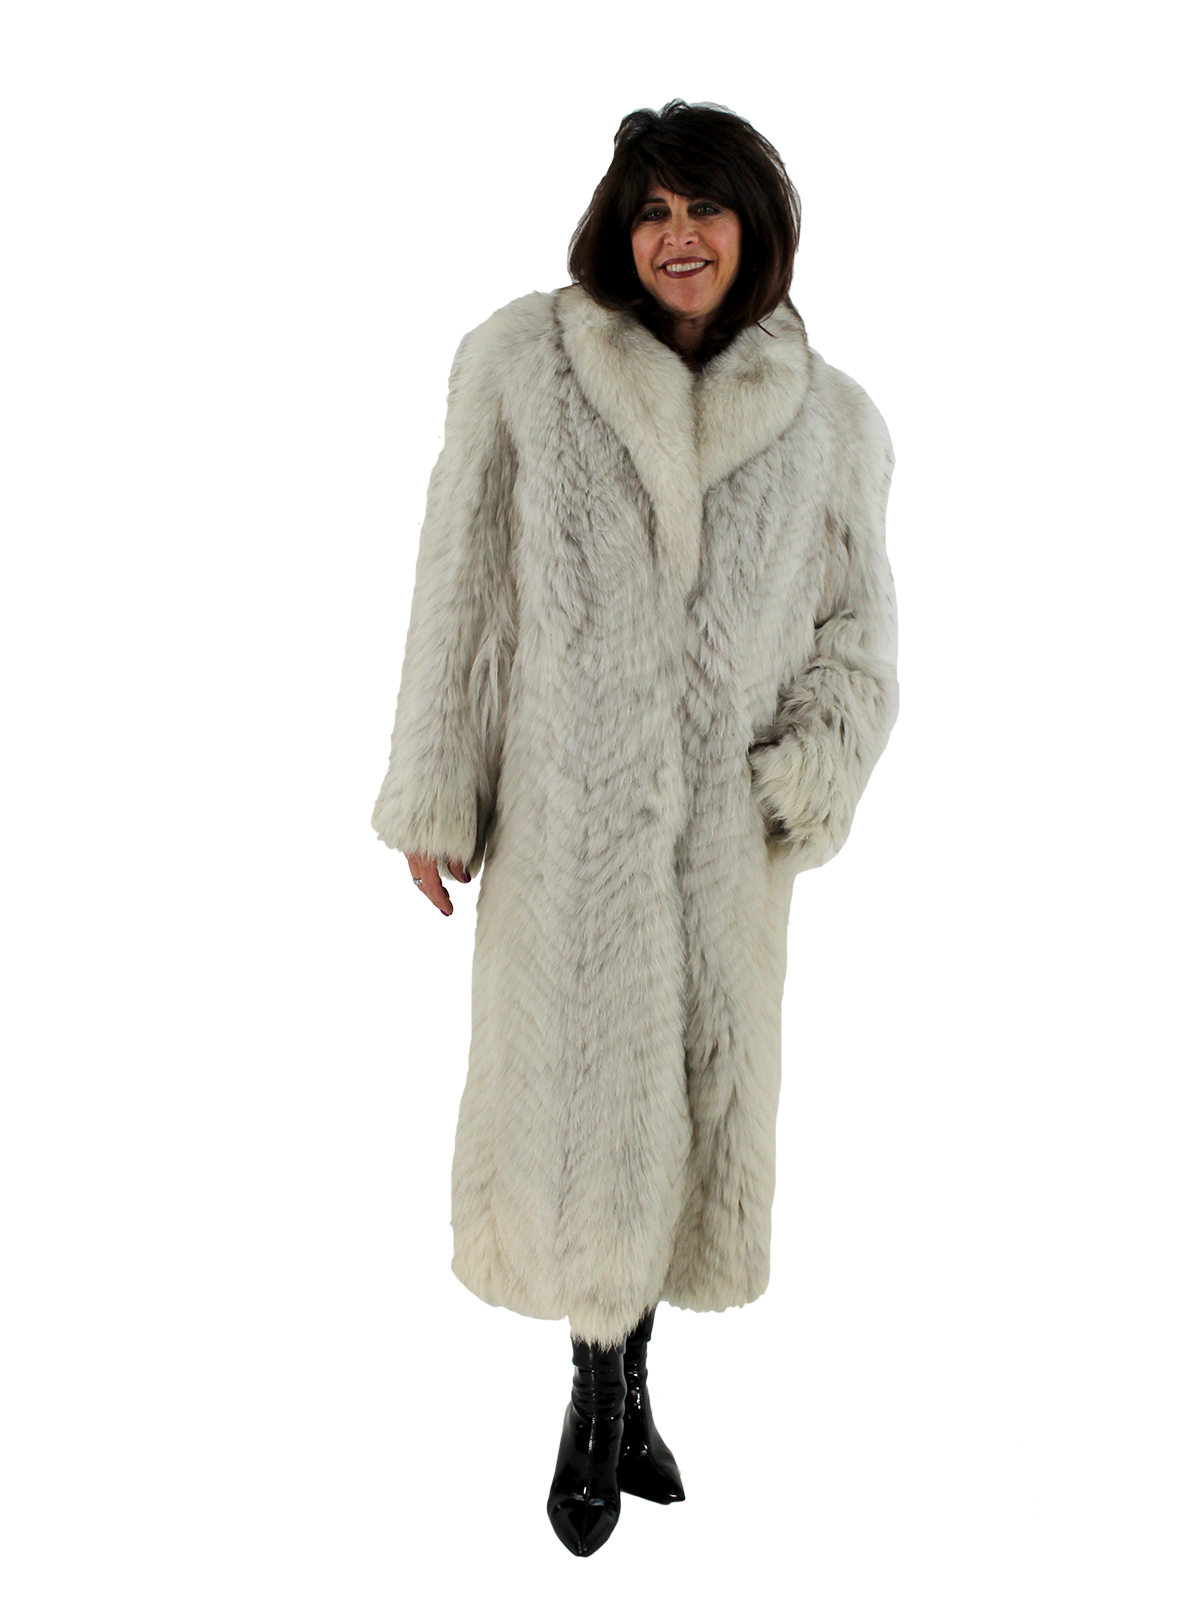 cheap for sale clients first newest style Natural Blue Fox Fur Coat - Women's Fur Coat - Small| Estate Furs